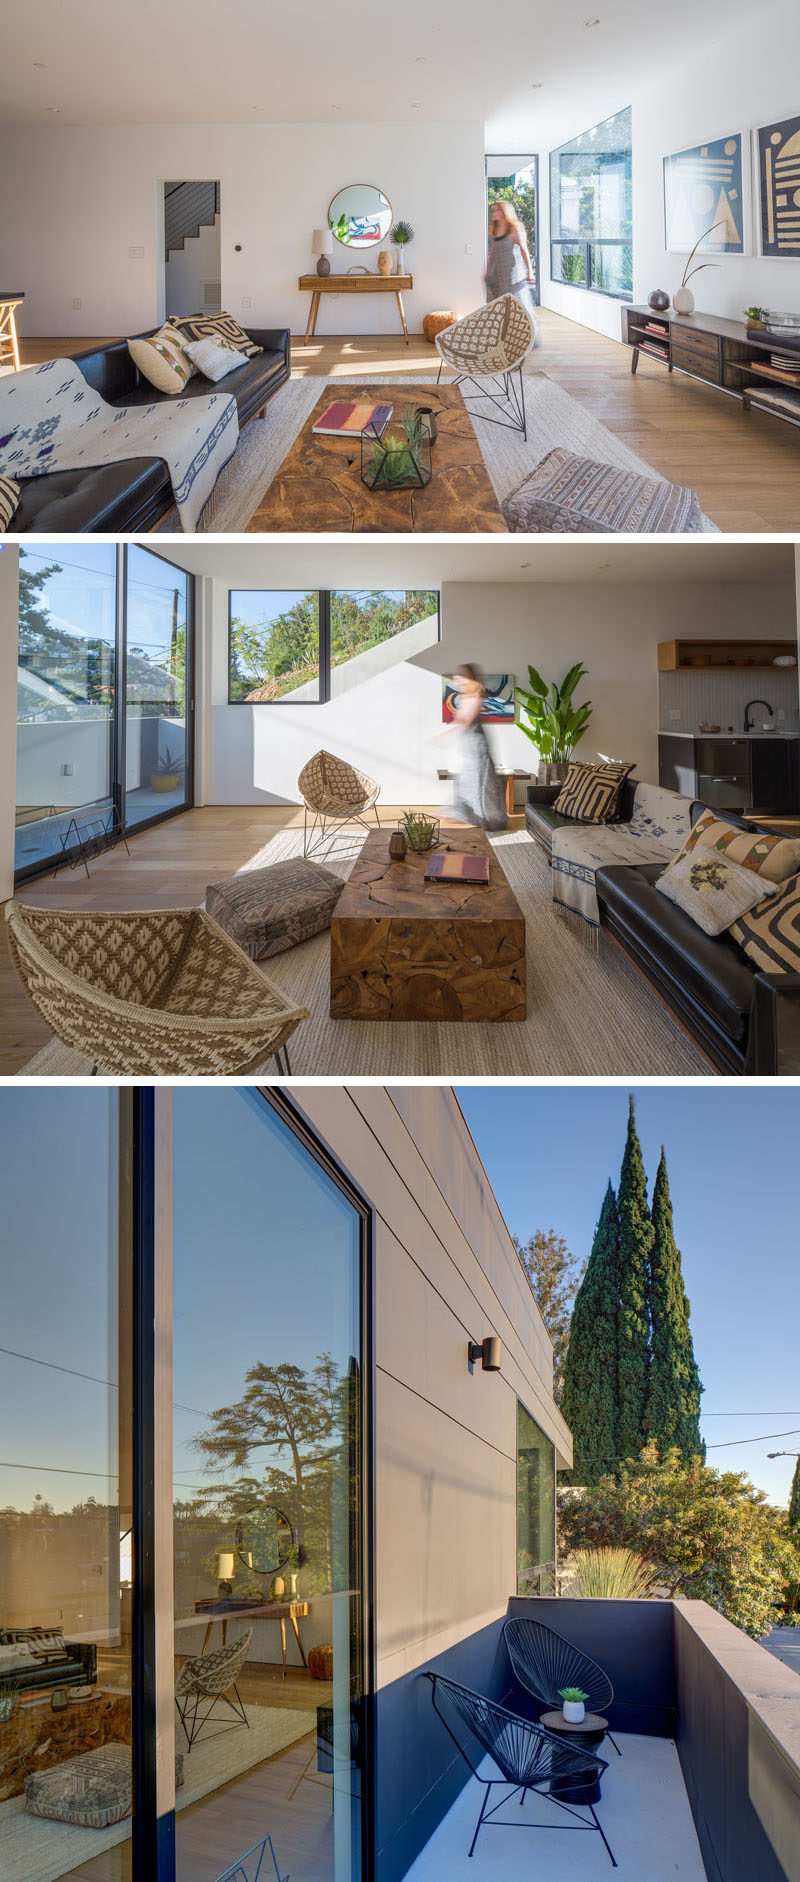 Inside this modern house, the living room, dining room and kitchen share the same open space, while located off the living room is another small deck with space to sit outside. #LivingRoom #InteriorDesign